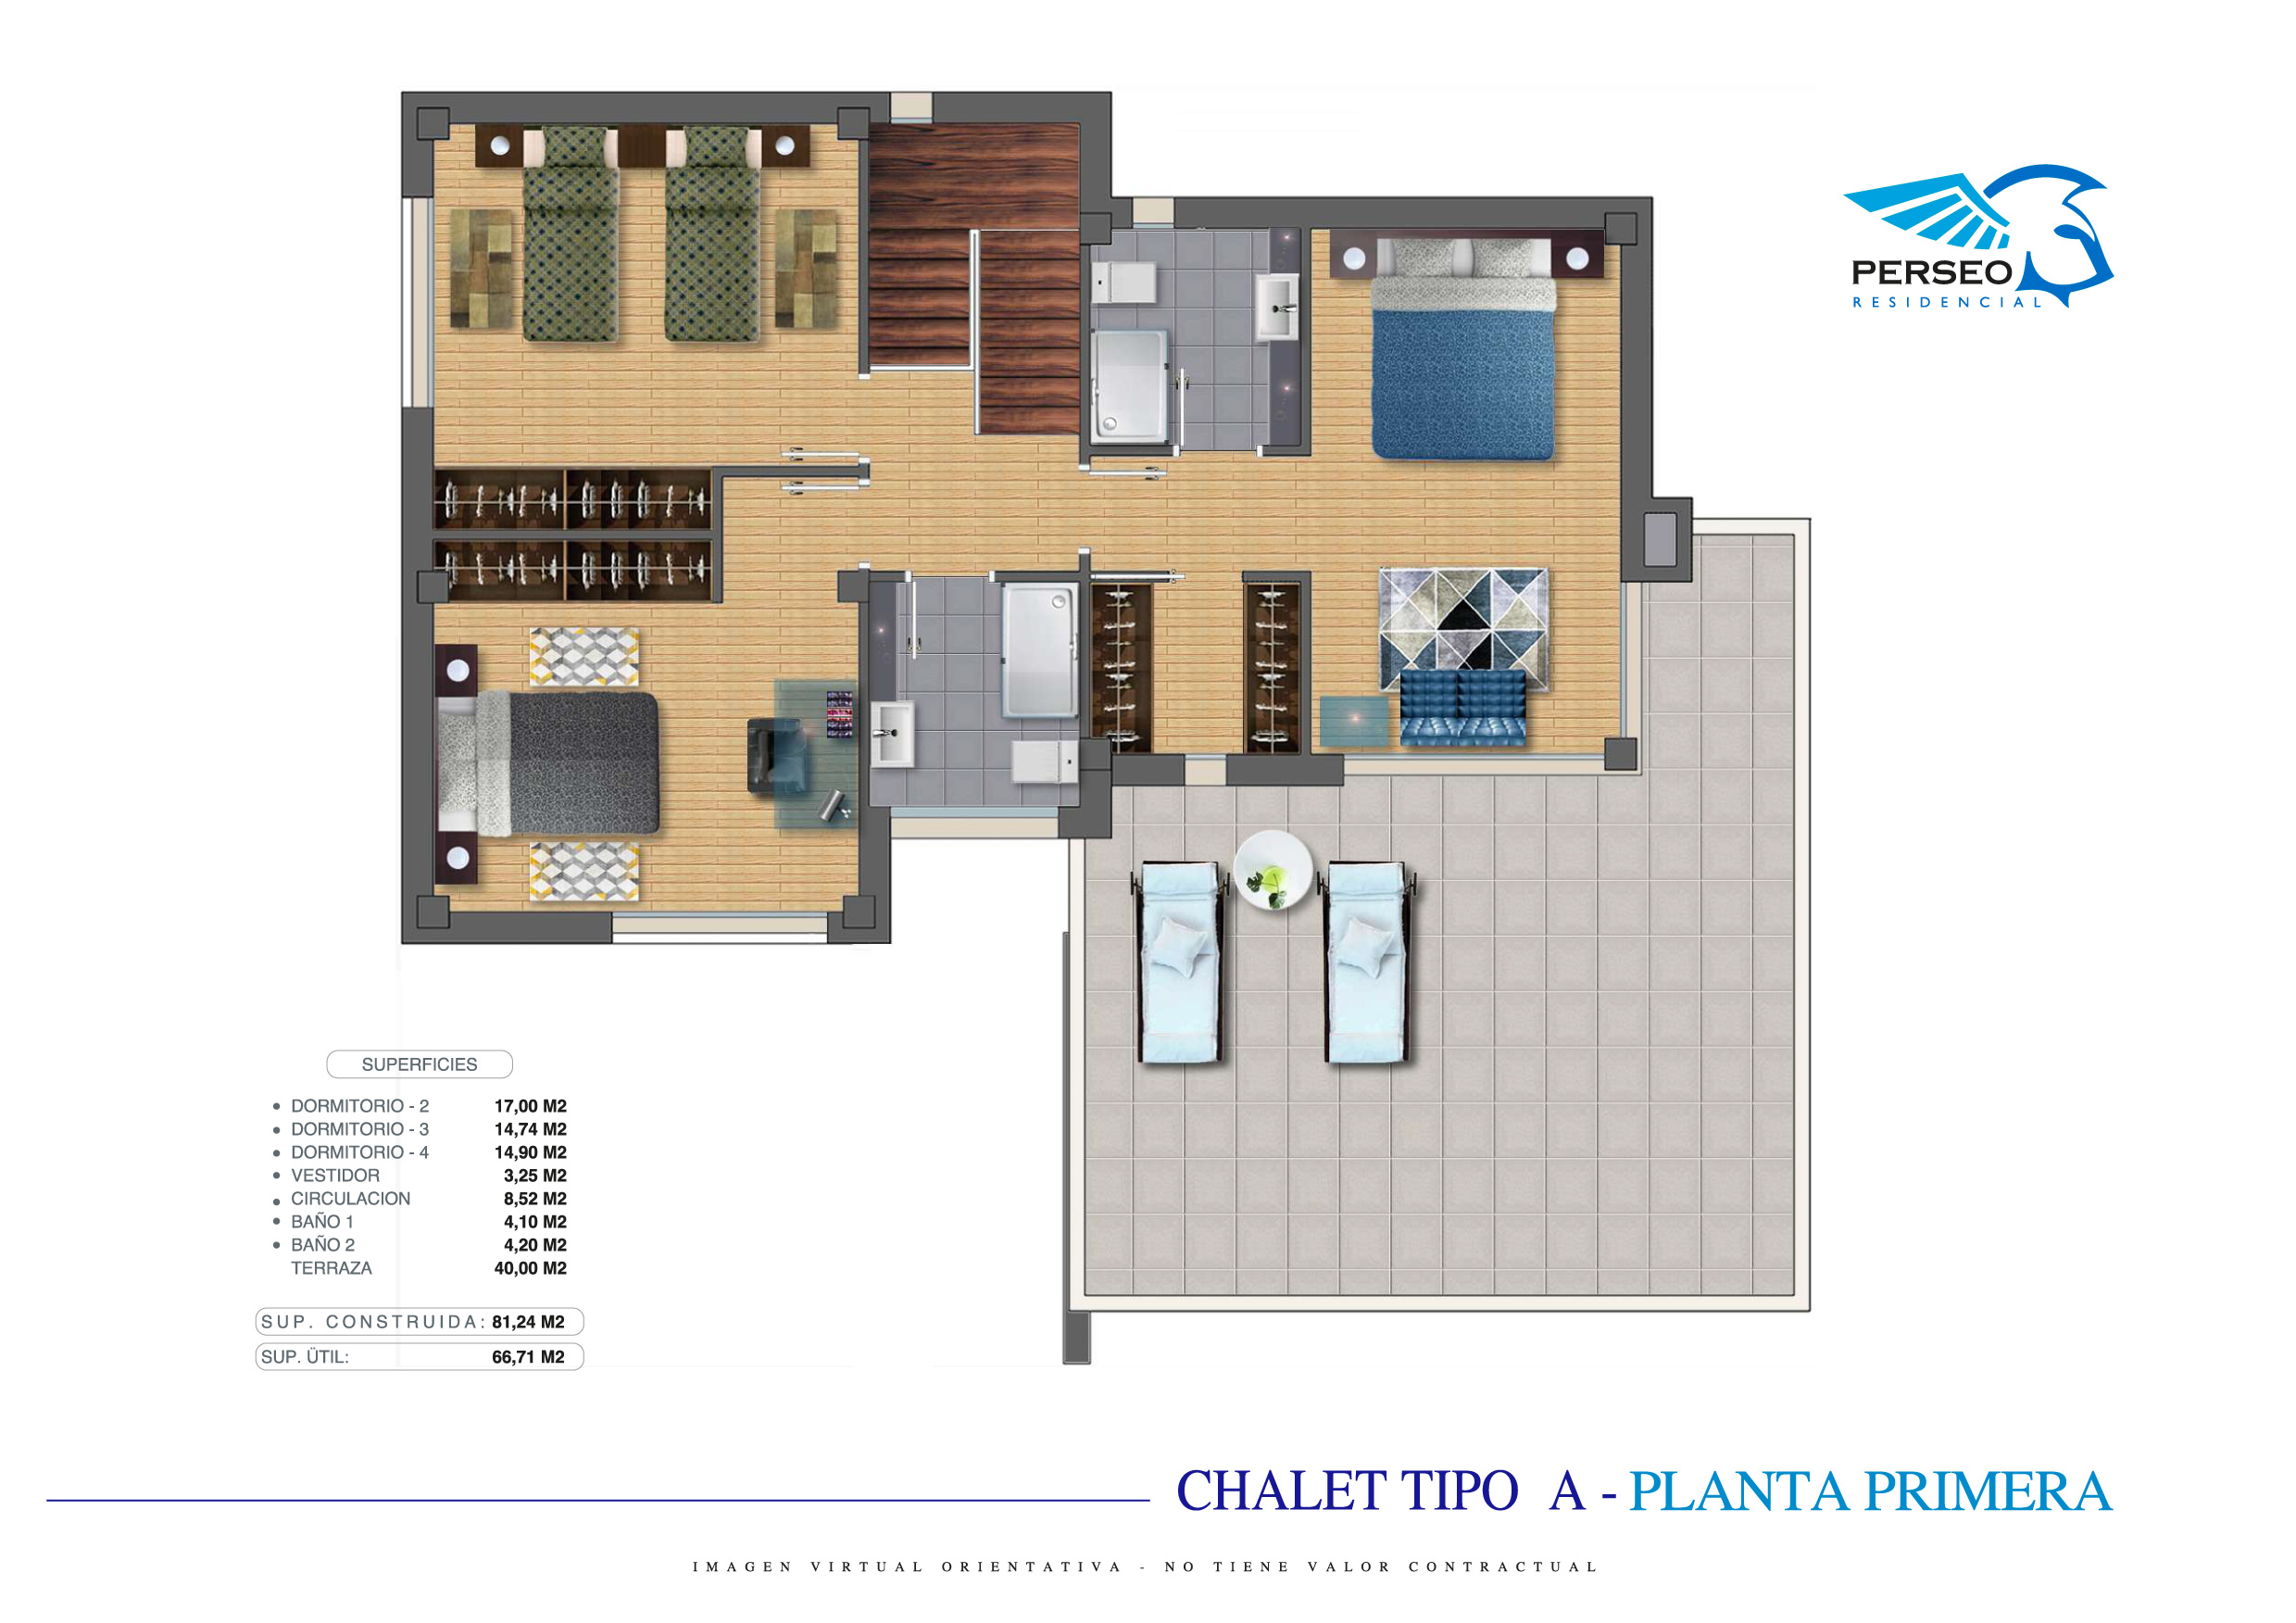 Residencial Perseo - Chalet A - P1-01